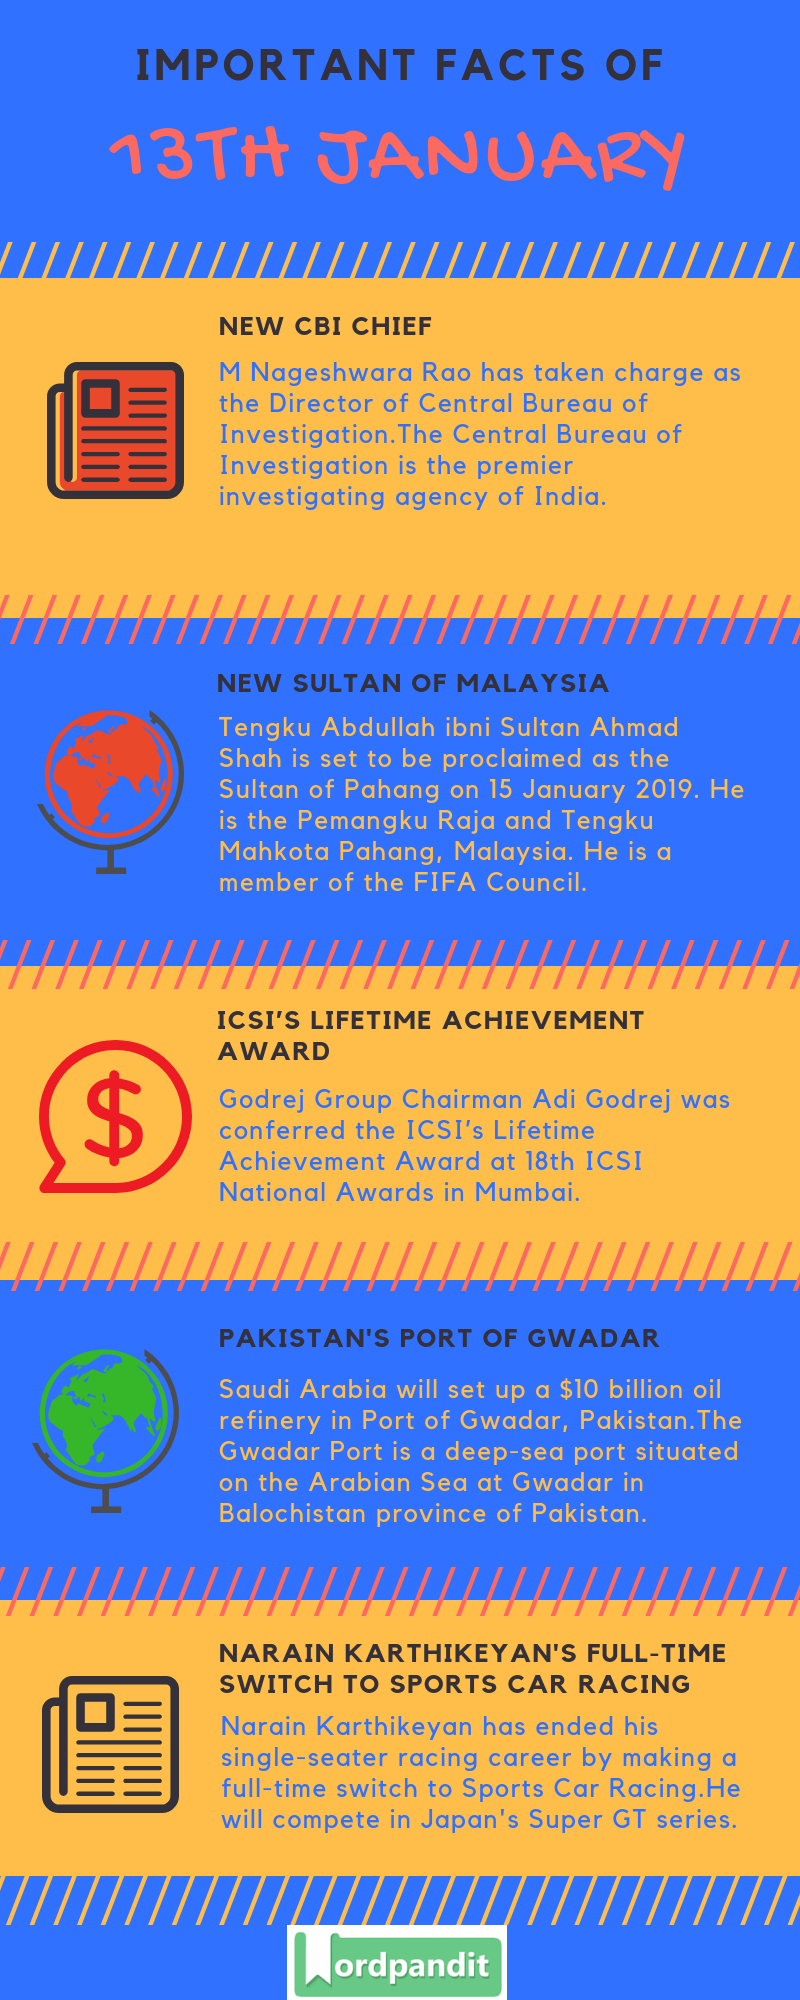 Daily Current Affairs 13 January 2019 Current Affairs Quiz 13 January 2019 Current Affairs Infographic